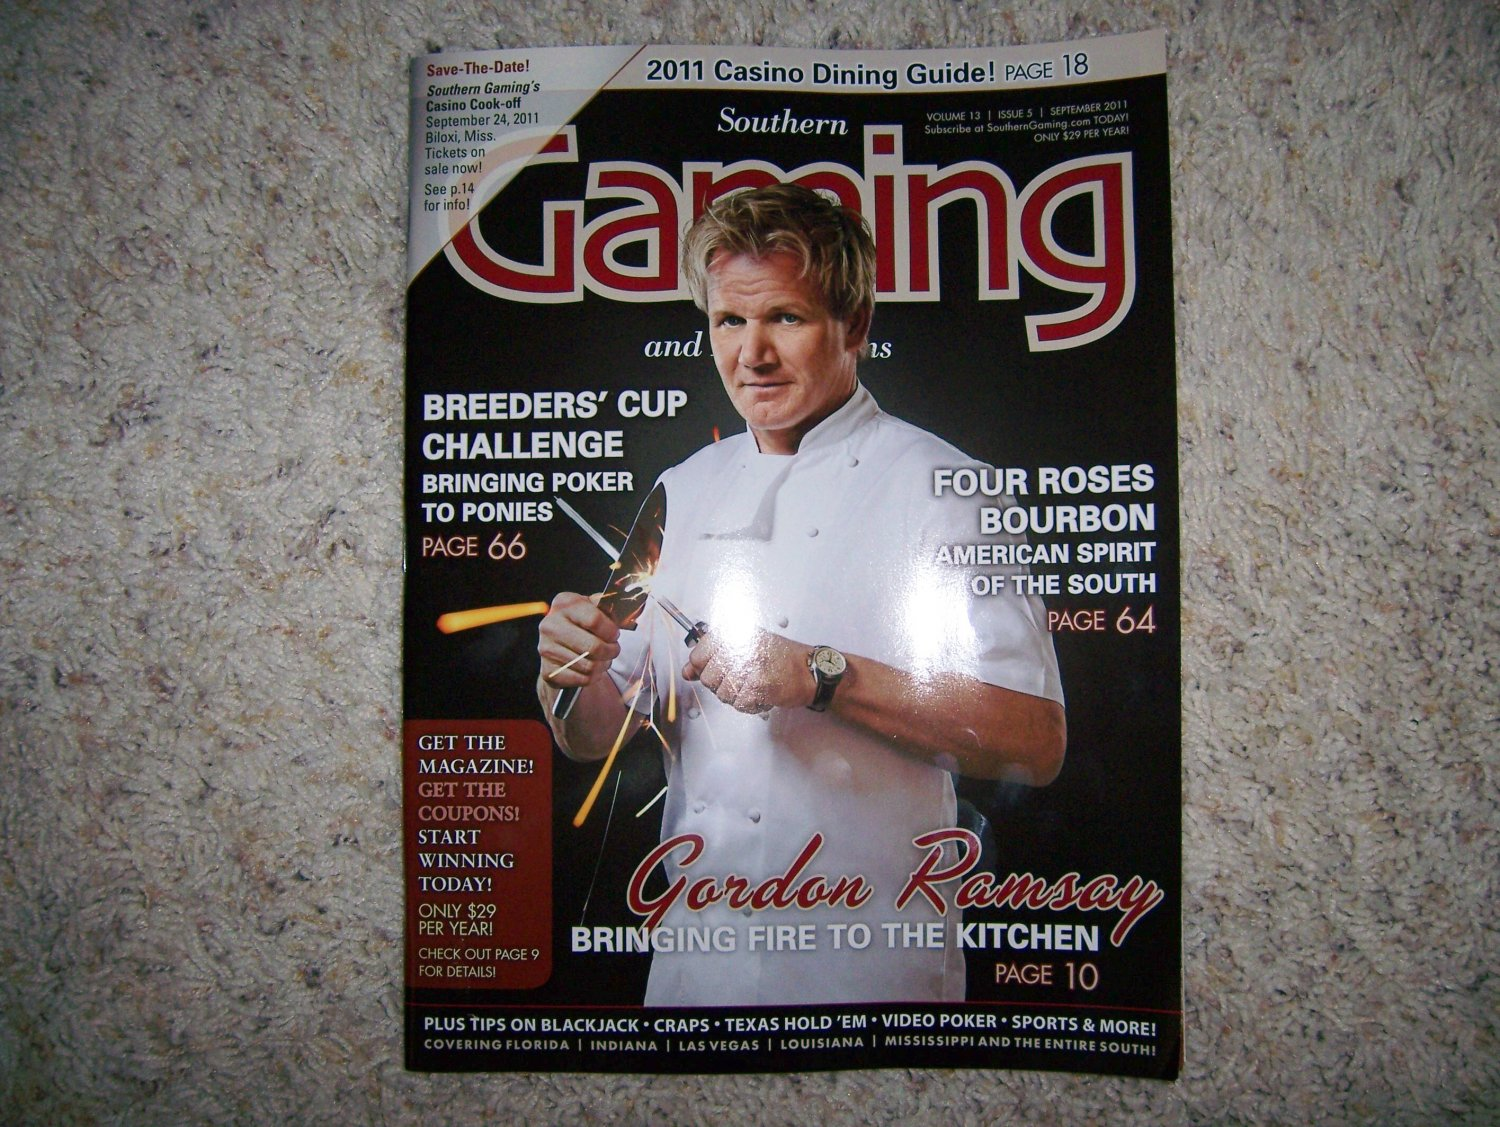 Southern Gaming Magazine Sept 2011  BNK929